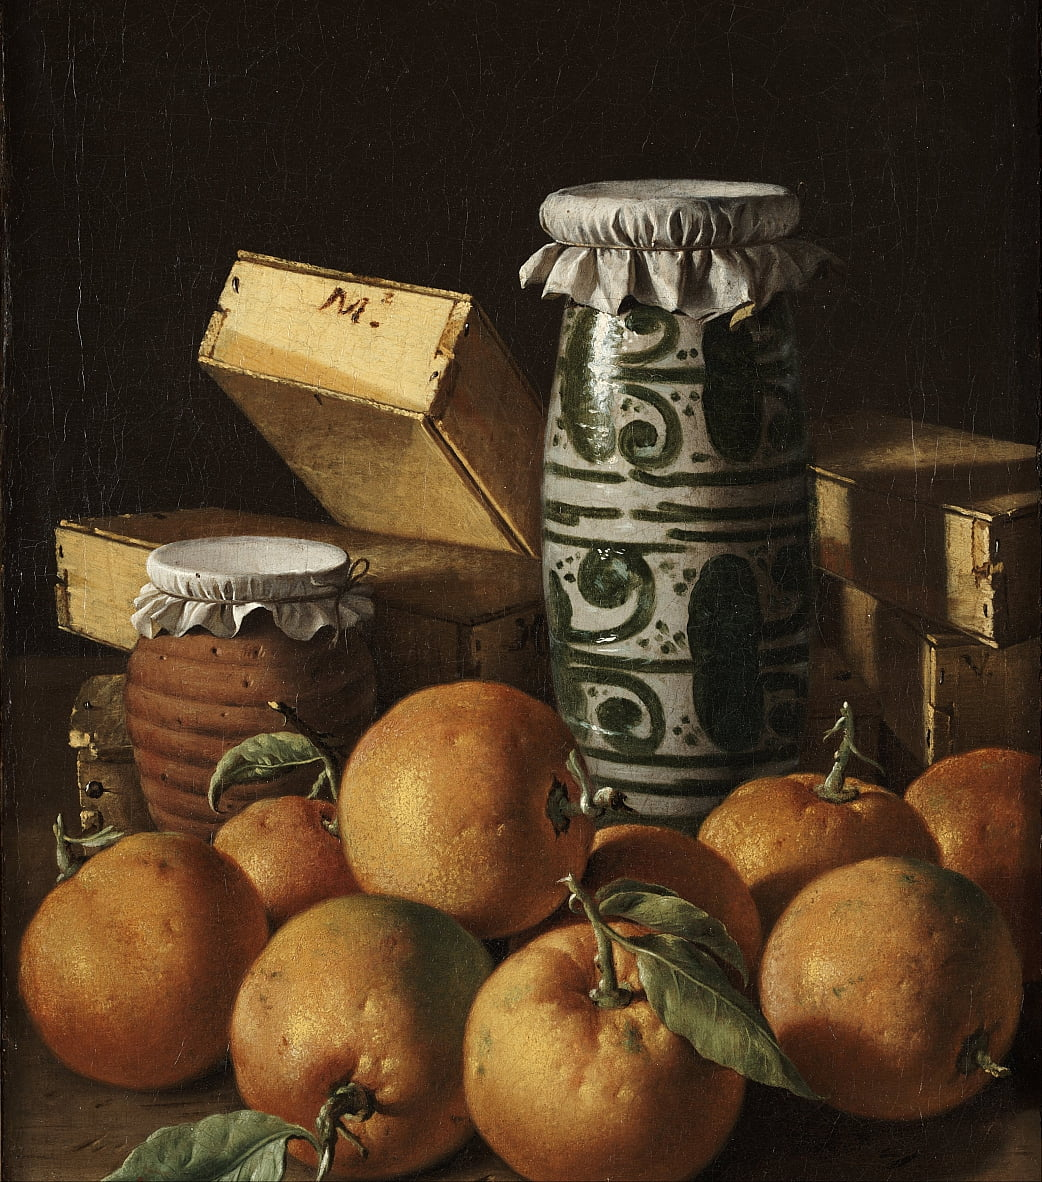 Still Life with Oranges, Jars, and Boxes of Sweets by Luis Egidio Melendez